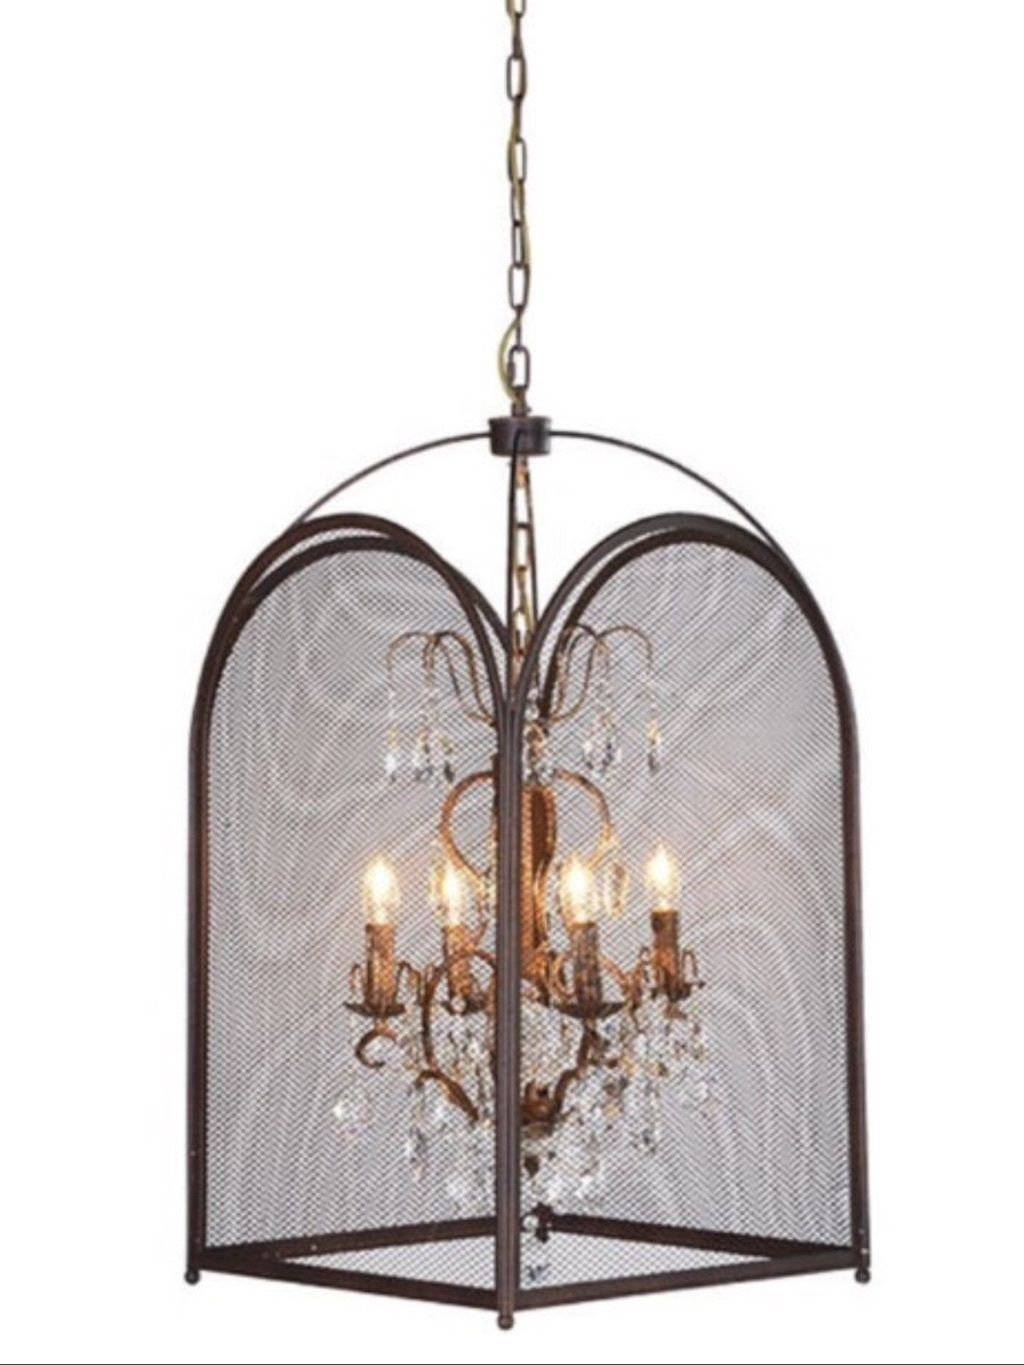 Chandelier Glamorous Caged Chandelier Trellis Cage Chandelier Regarding Cage Chandeliers (Image 6 of 15)